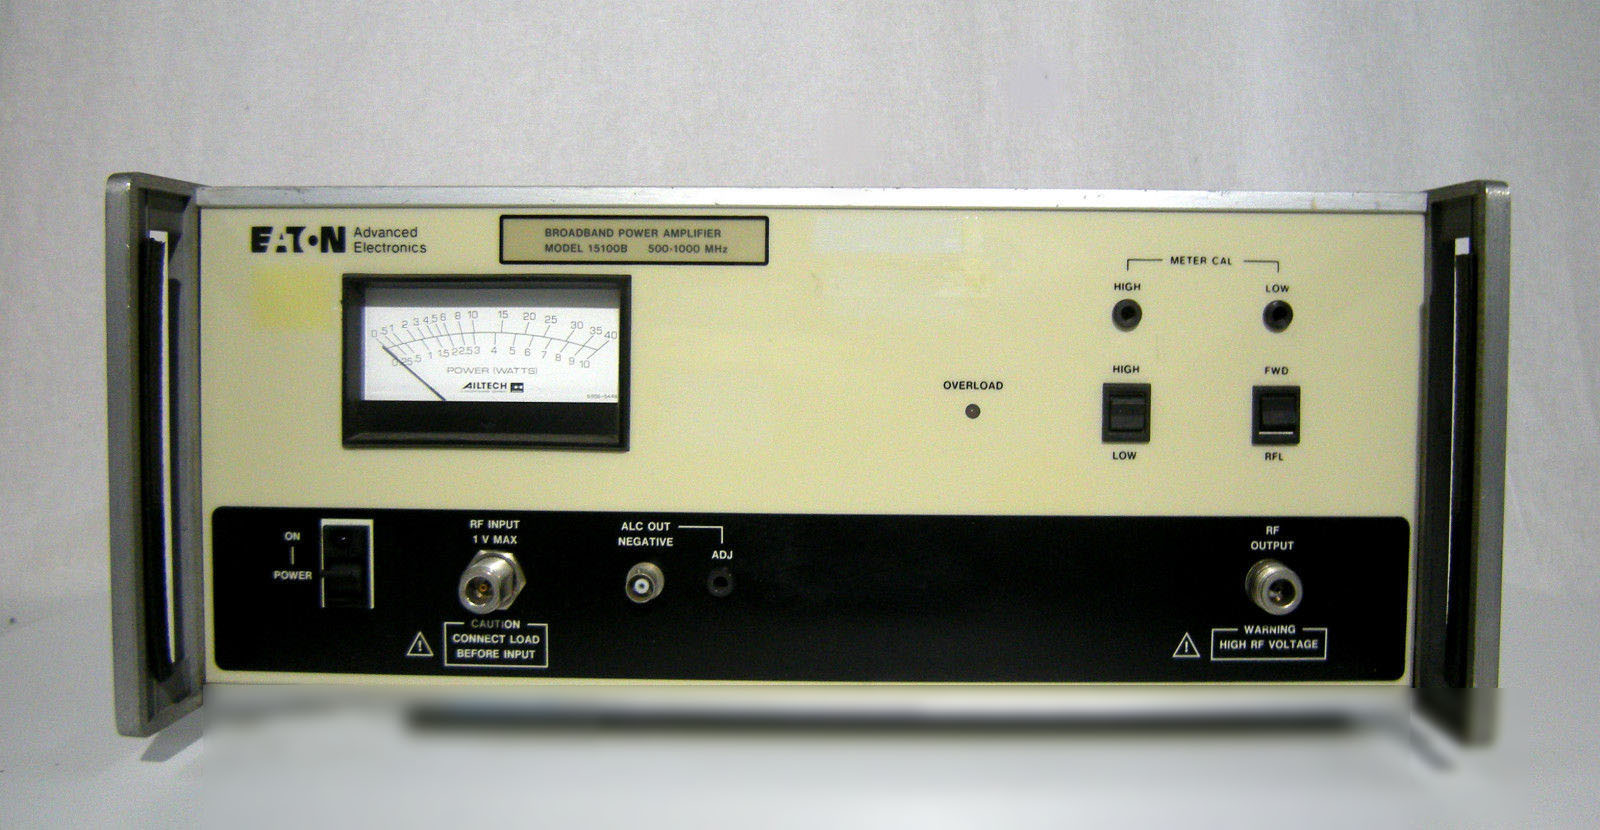 eaton-ailtech-15100b-broadband-amplifier-500-1000-mhz-44-db-gain-0.jpg